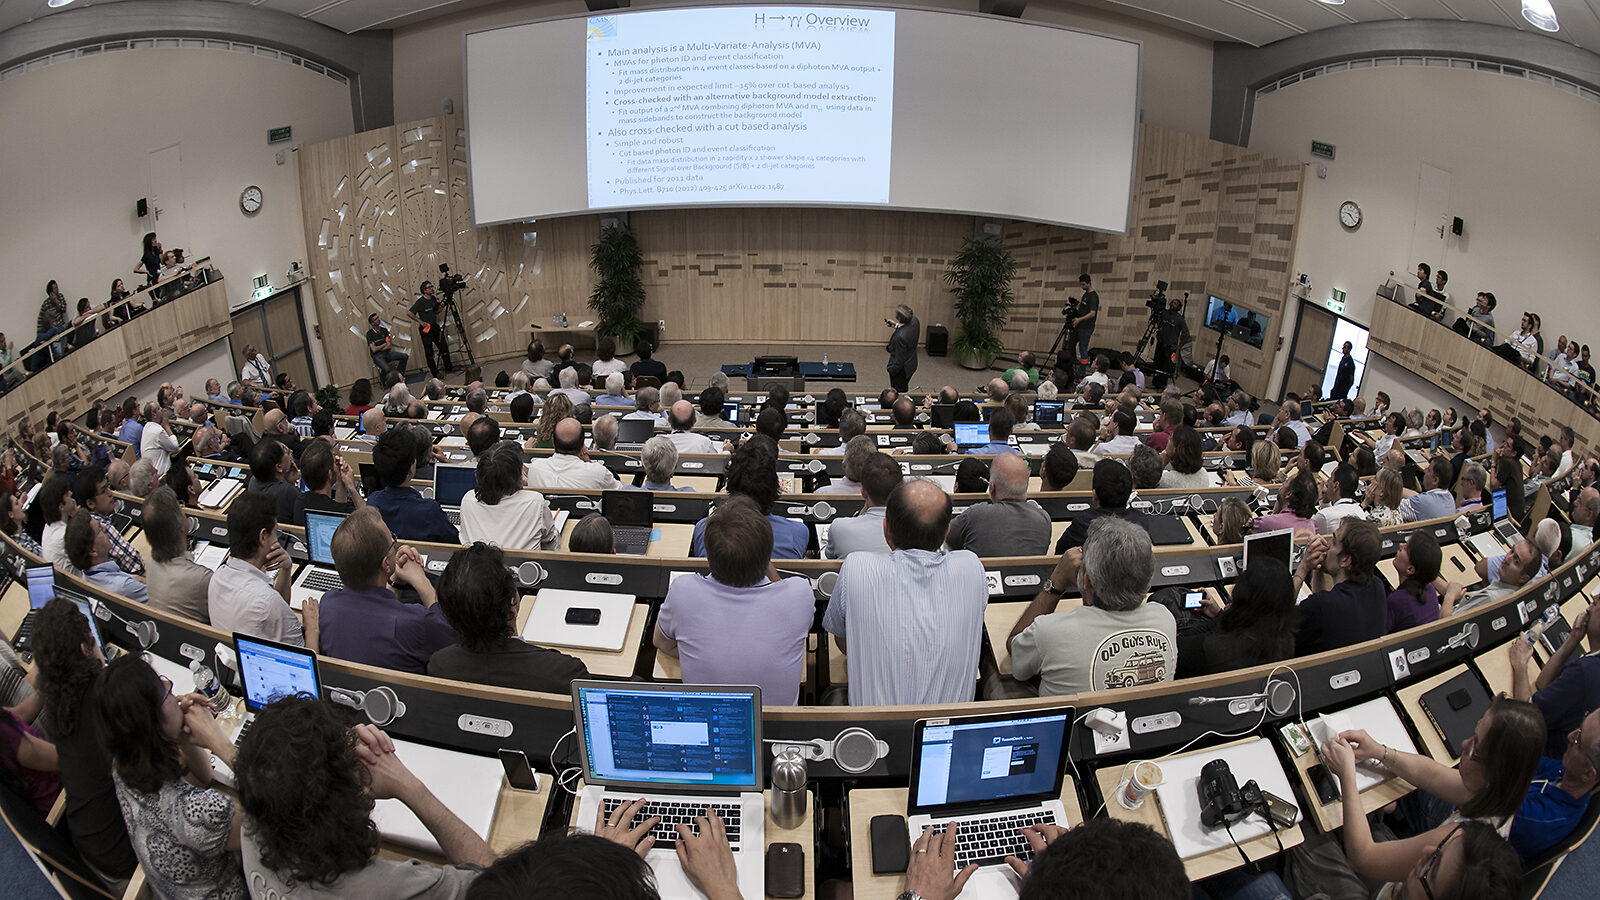 Photo from the back of a crowded conference room on the day of the Higgs announcement